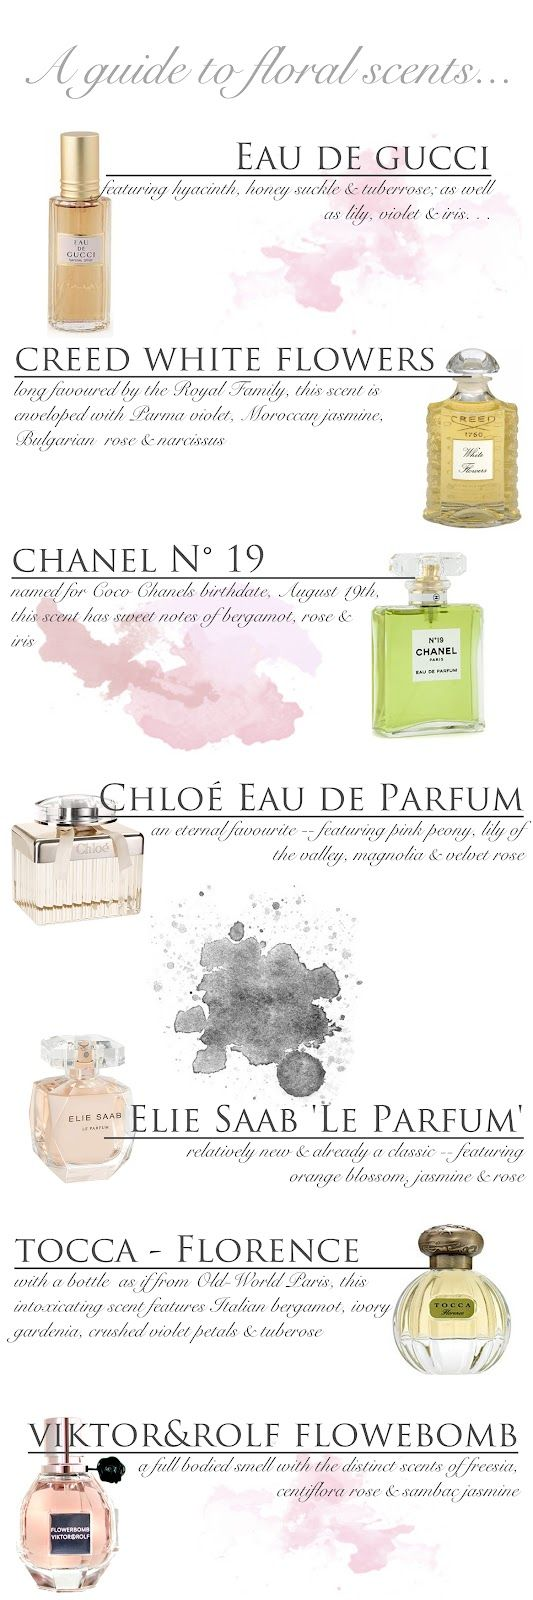 379 best smell goods images on pinterest find this pin and more on smell goods by lakitramiller dhlflorist Images